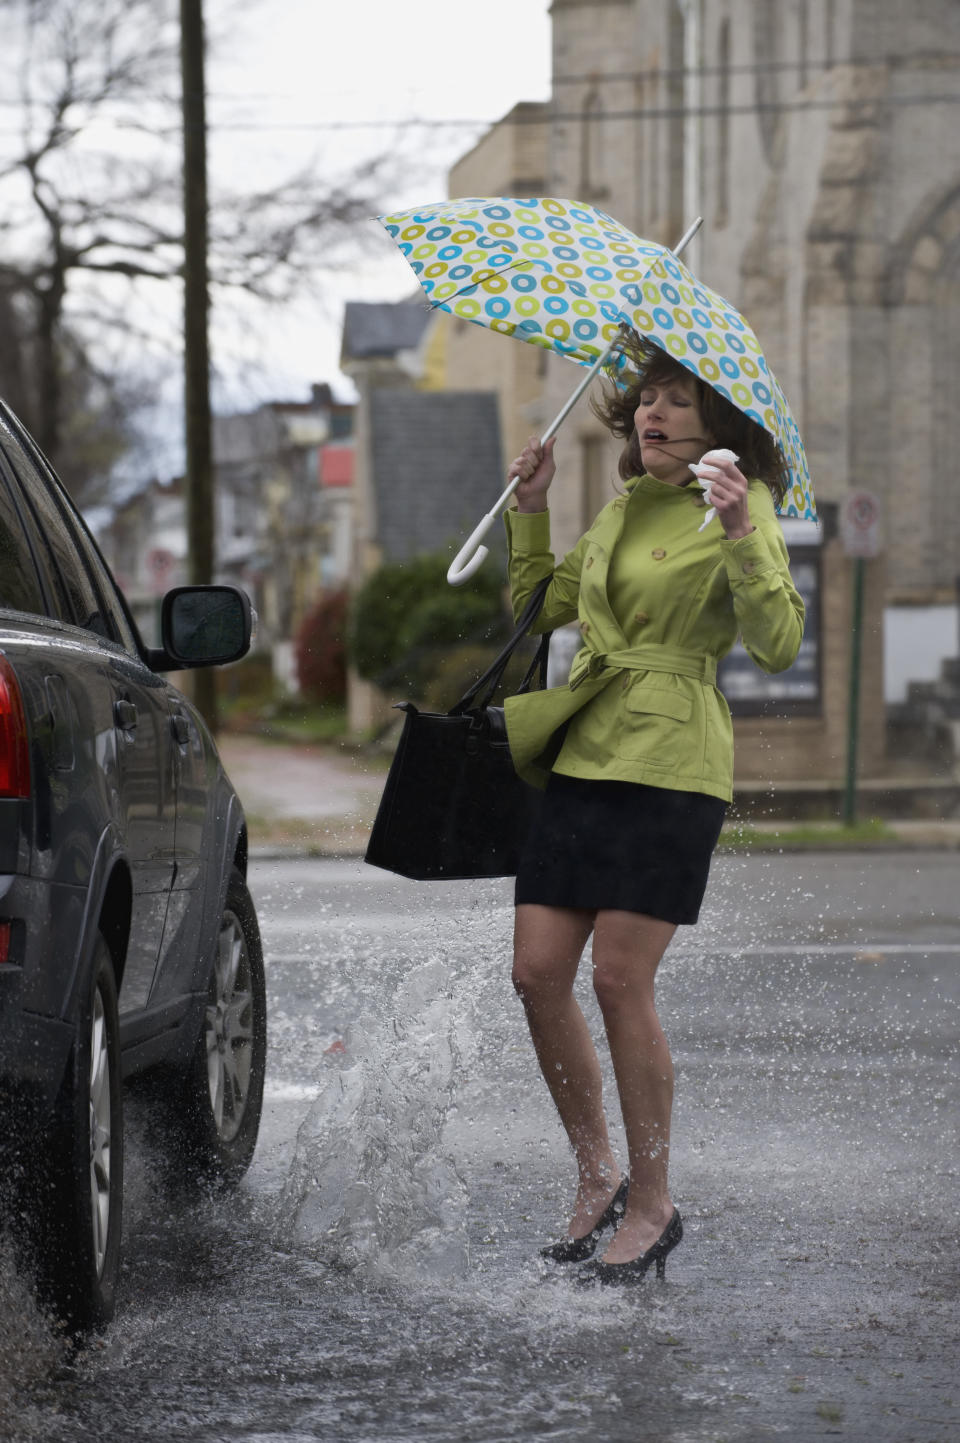 Woman splashed by car. Source: Getty Images